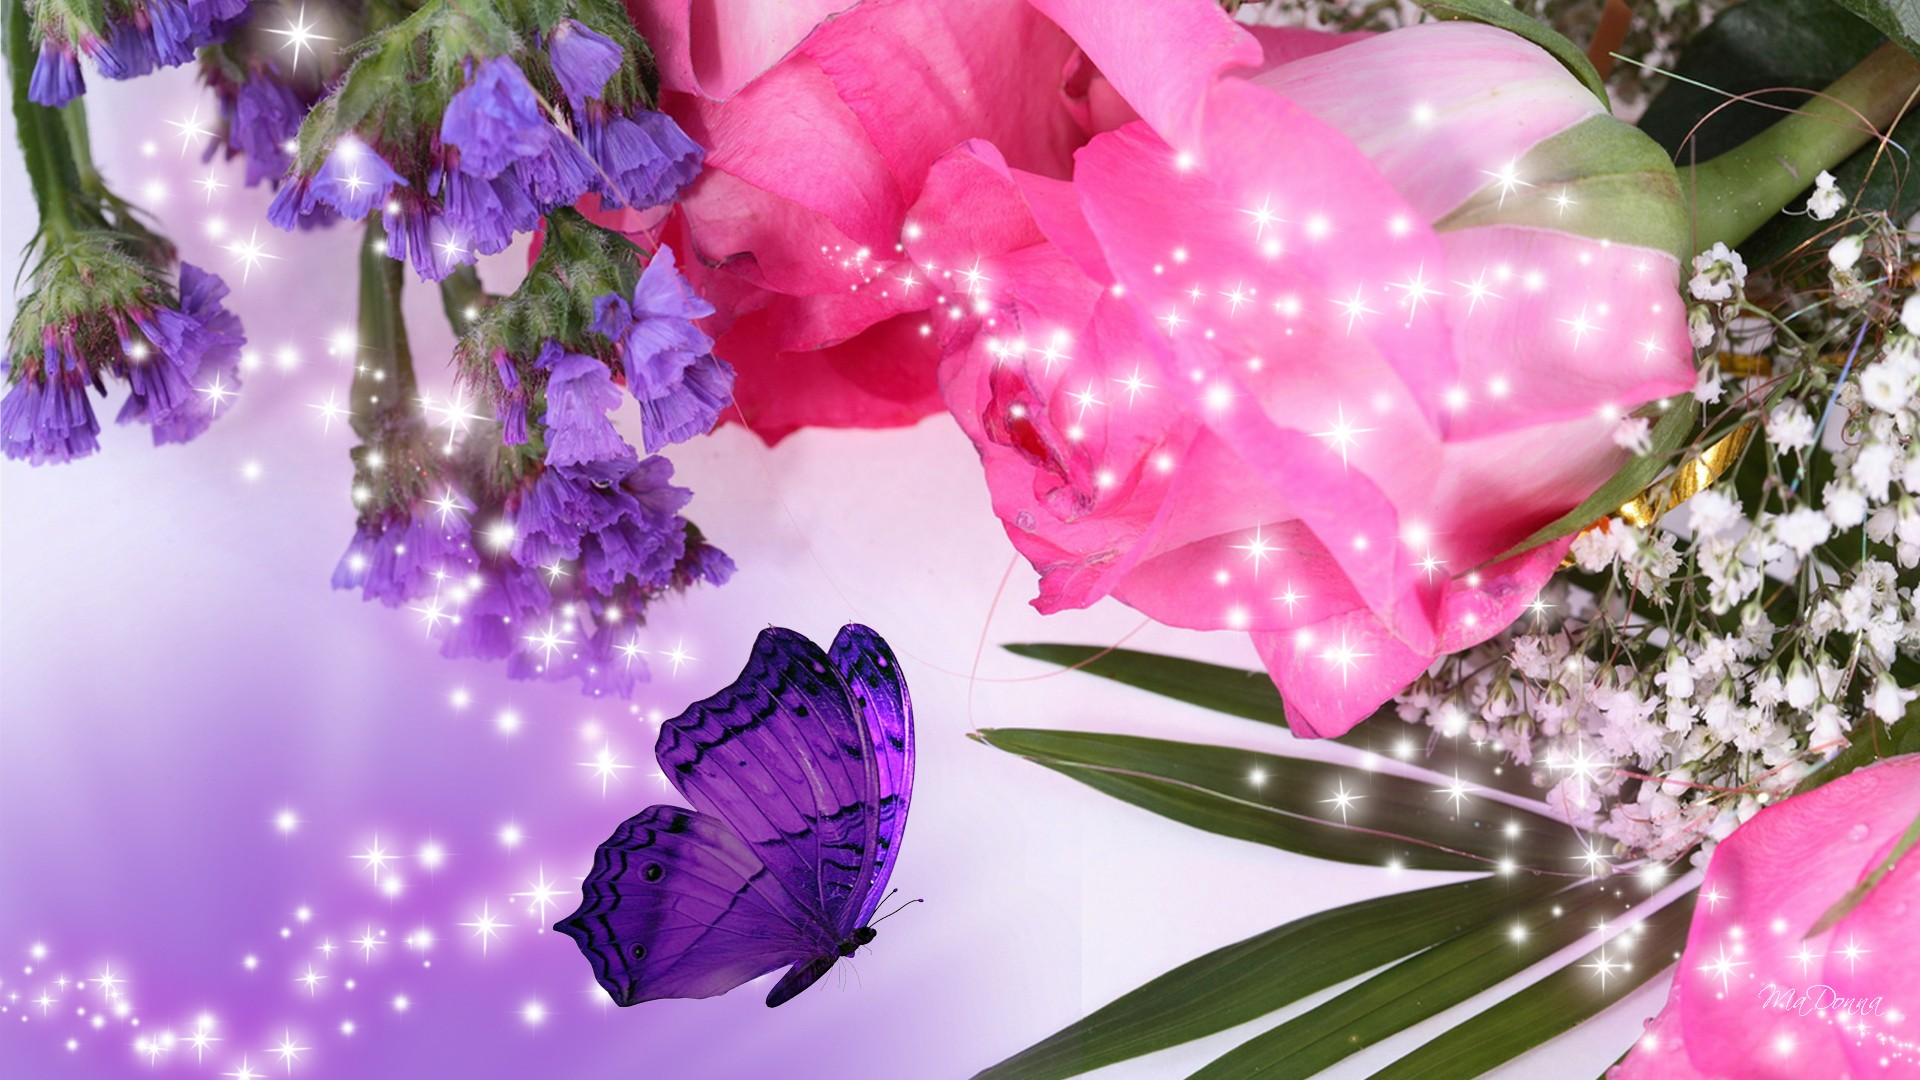 Pinke Bilder 35 High Definition Pink Wallpapers/backgrounds For Free ...